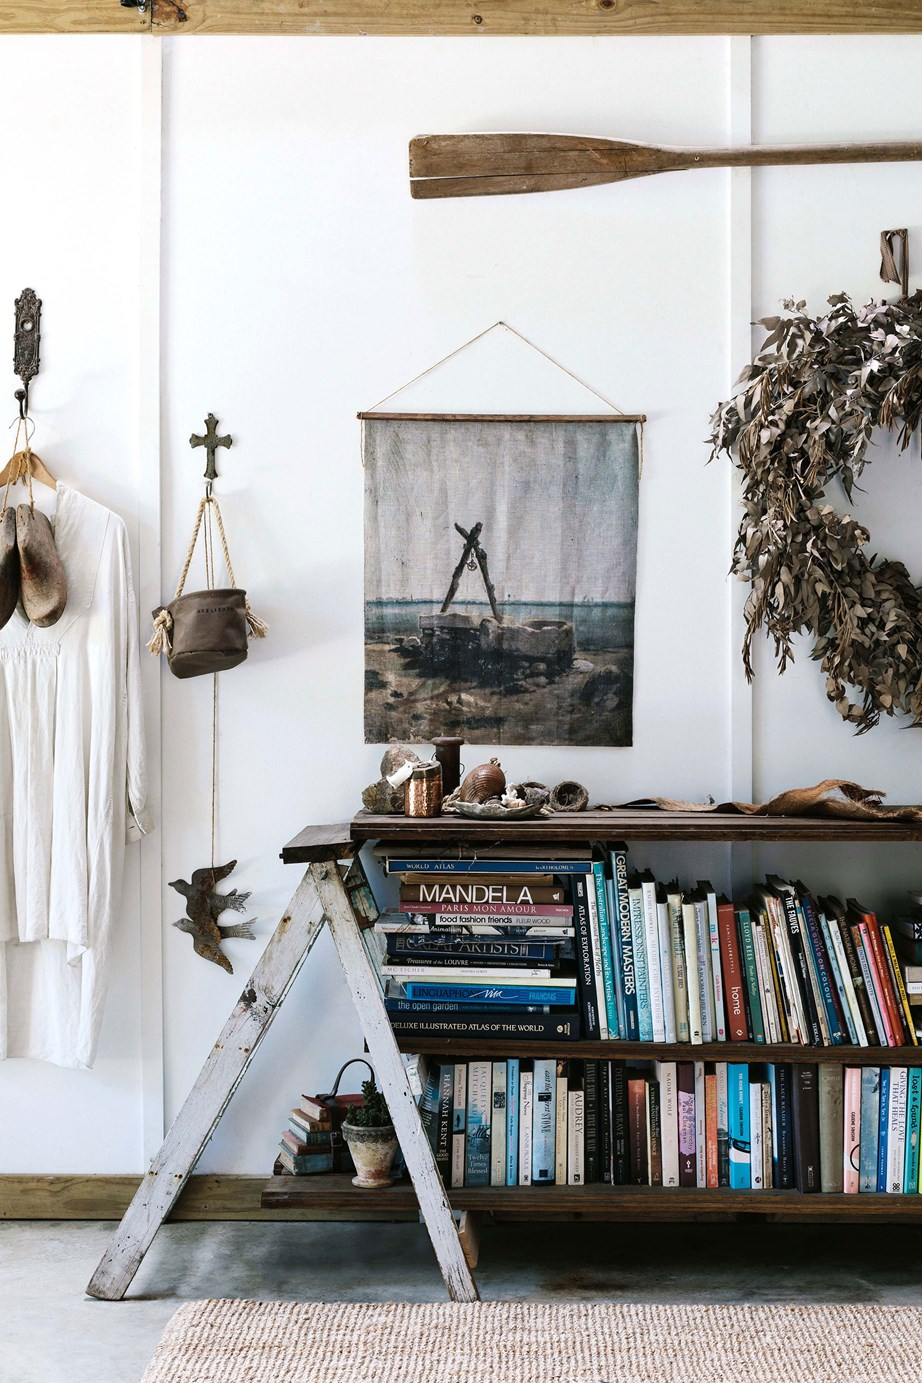 """When you look around at what materials you already have, sometimes you can create a space so unique that it can never be replicated. [Upcycling furniture](https://www.homestolove.com.au/upcycled-furniture-ideas-6629